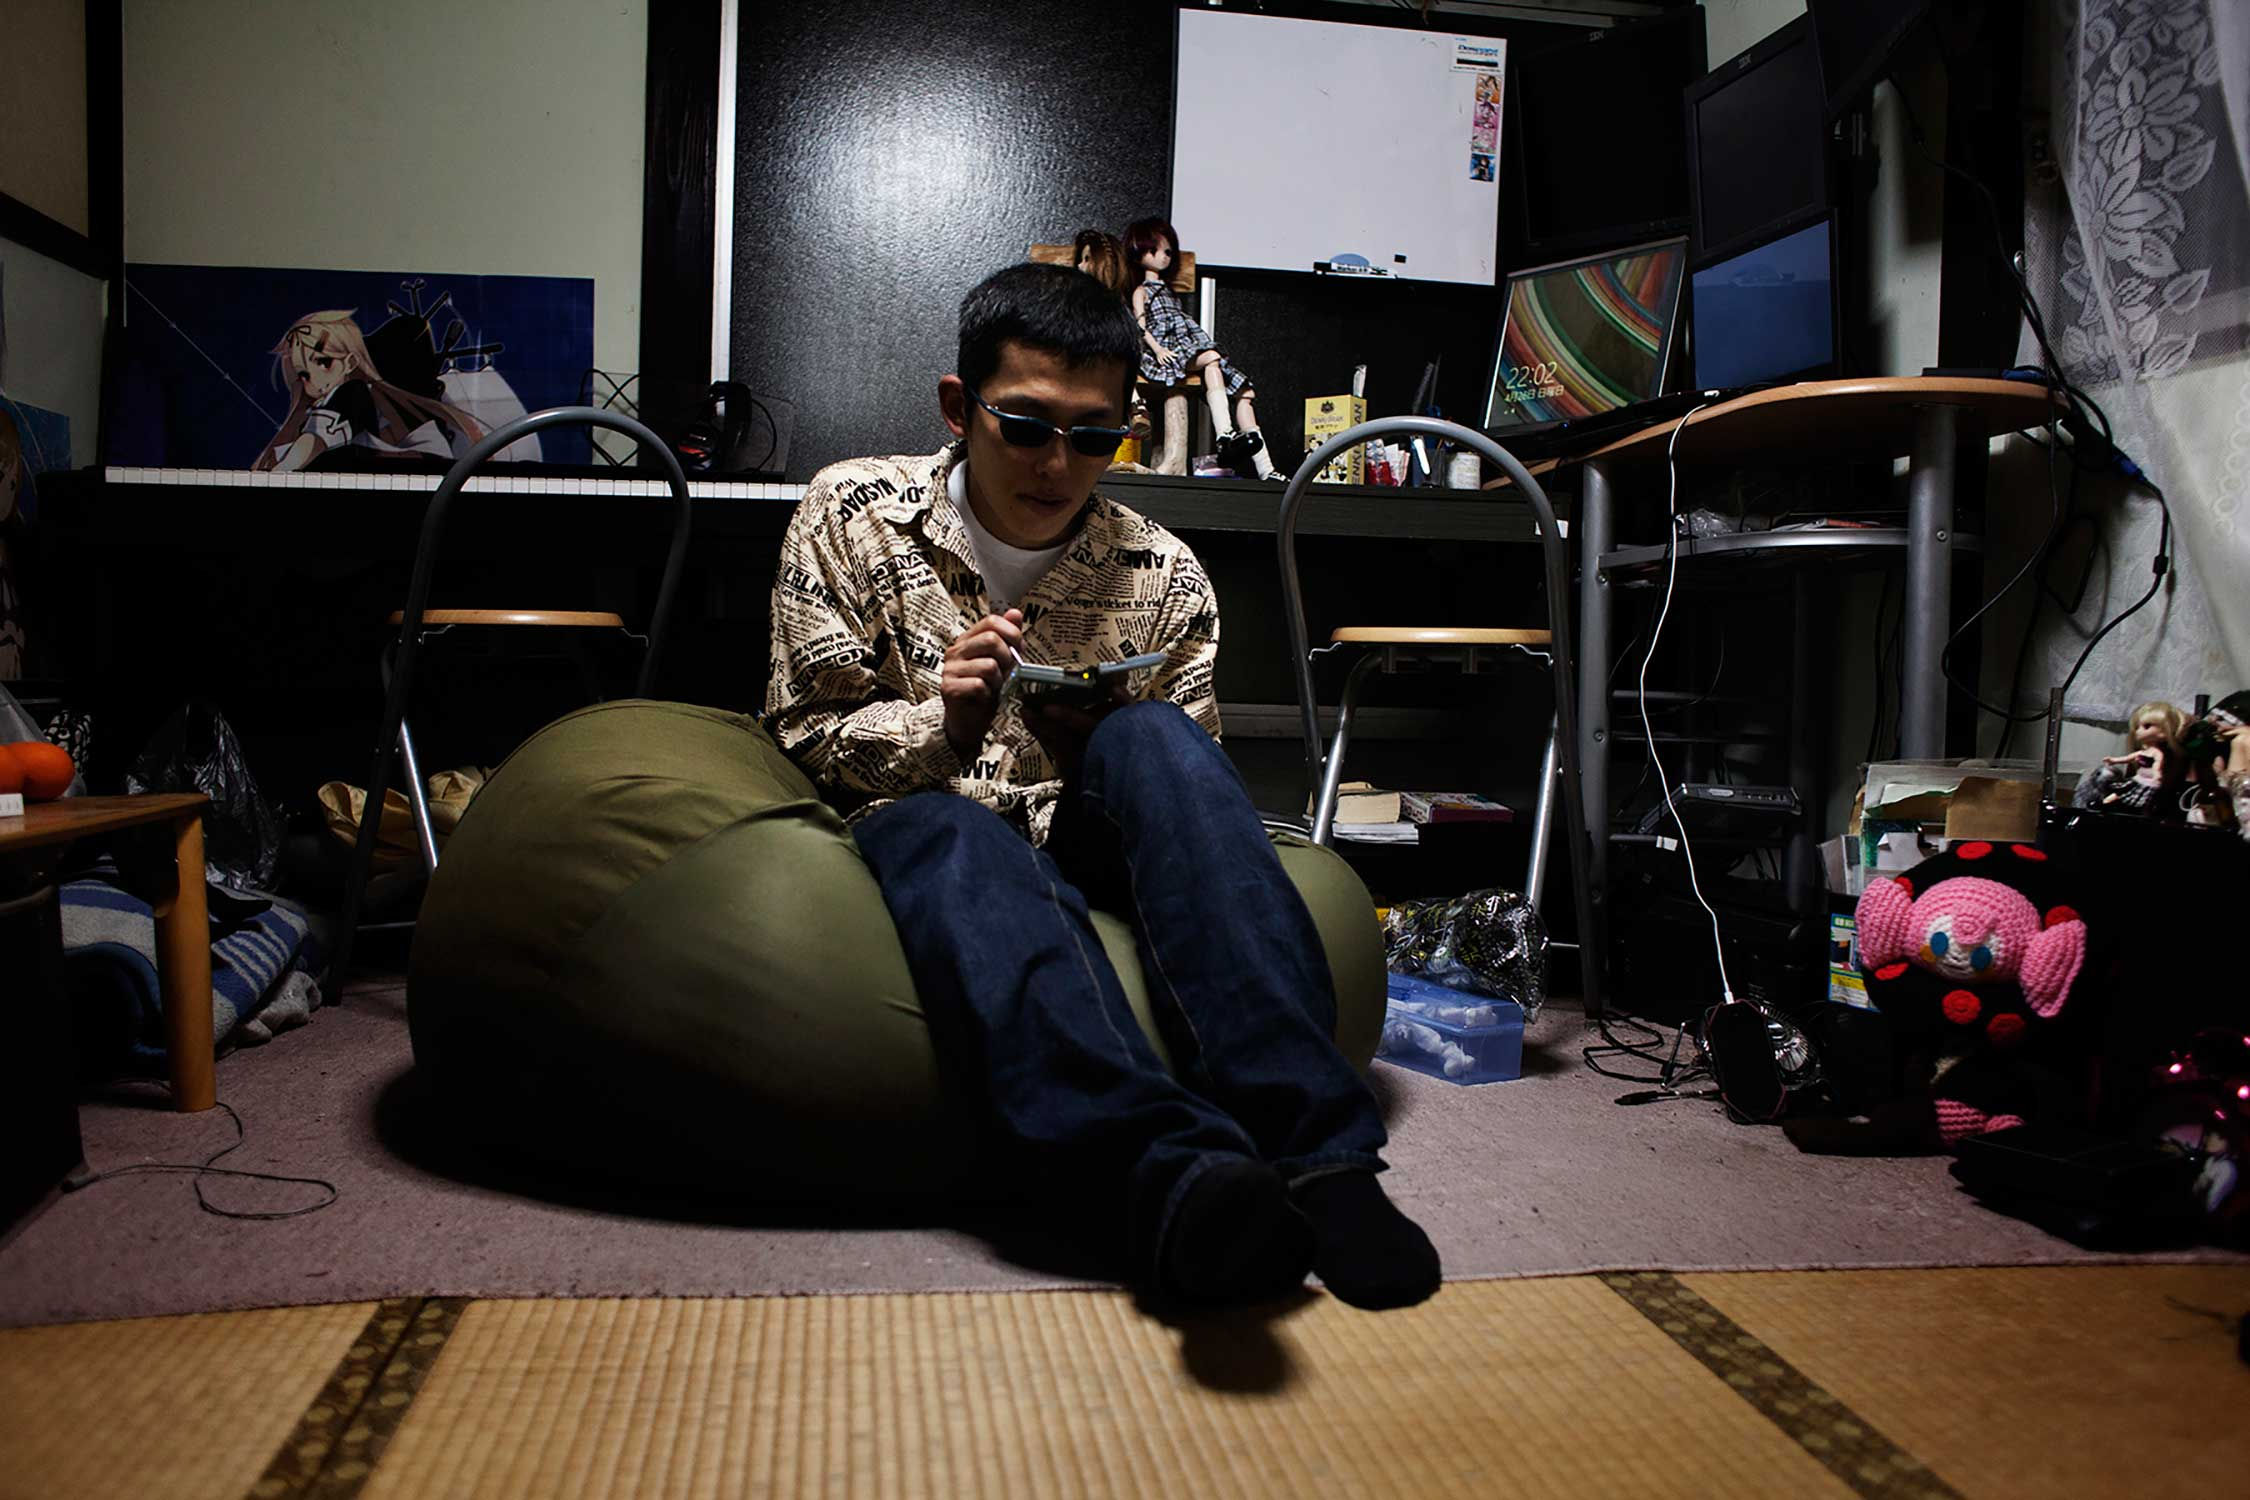 A 48-year old man who started playing Love Plus 5 years ago while working in a desolate place far from home, sits in his one room apartment with the console he uses to chat with his virtual girlfriend Manaka.